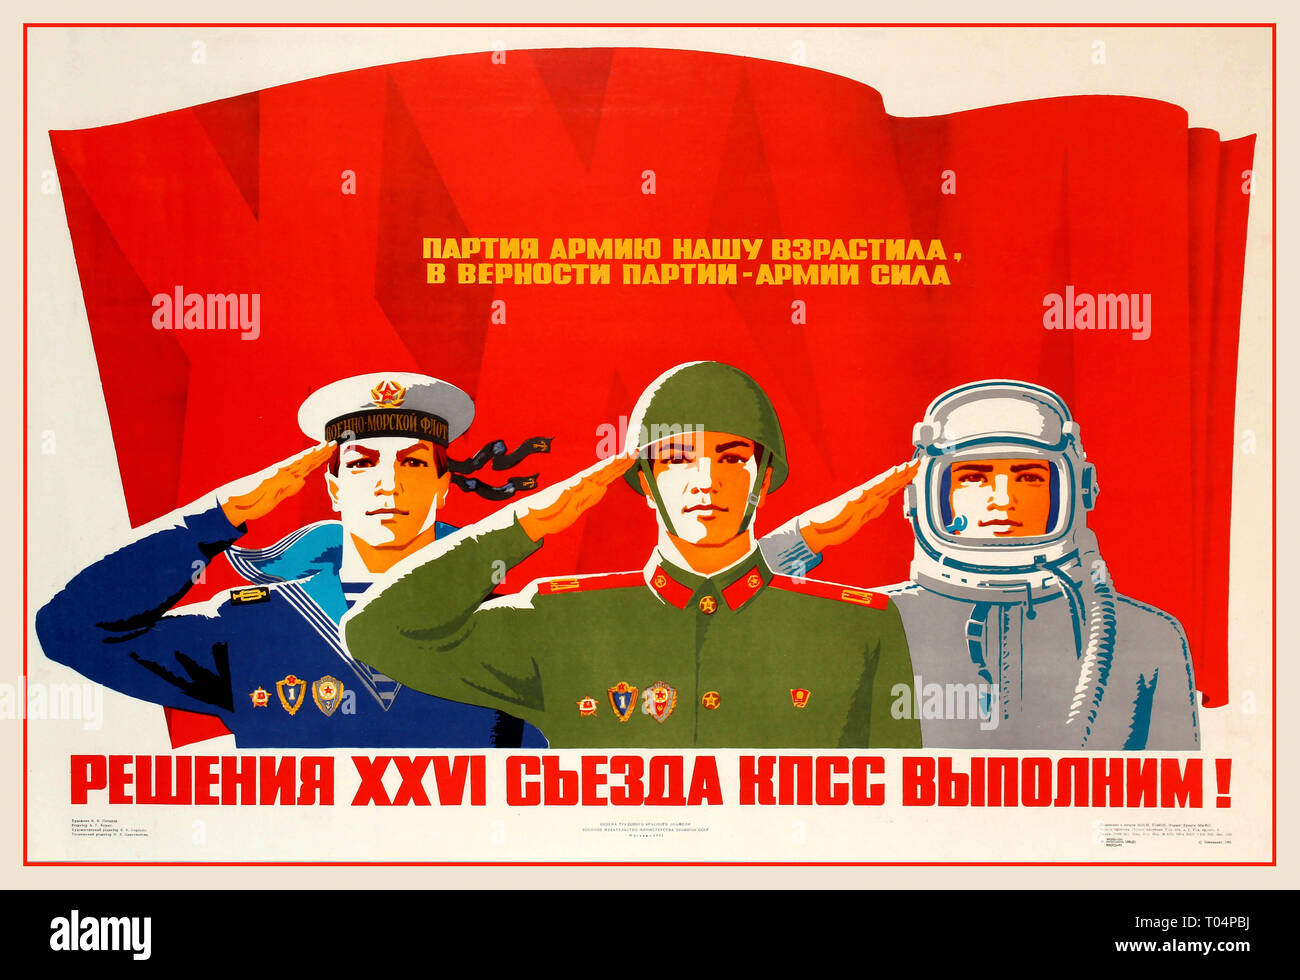 Original vintage Soviet propaganda poster with the slogans: Party nurtured our army, army's strength is in devotion to the party. We will fulfil resolutions of the 26th congress of the Communist Party! Colourful design featuring a sailor, soldier and cosmonaut (astronaut) making a military salute in front of a large red flag with XXVI on it, the text across the flag in yellow and below in stylised red letters. Russia.  1981. - Stock Image